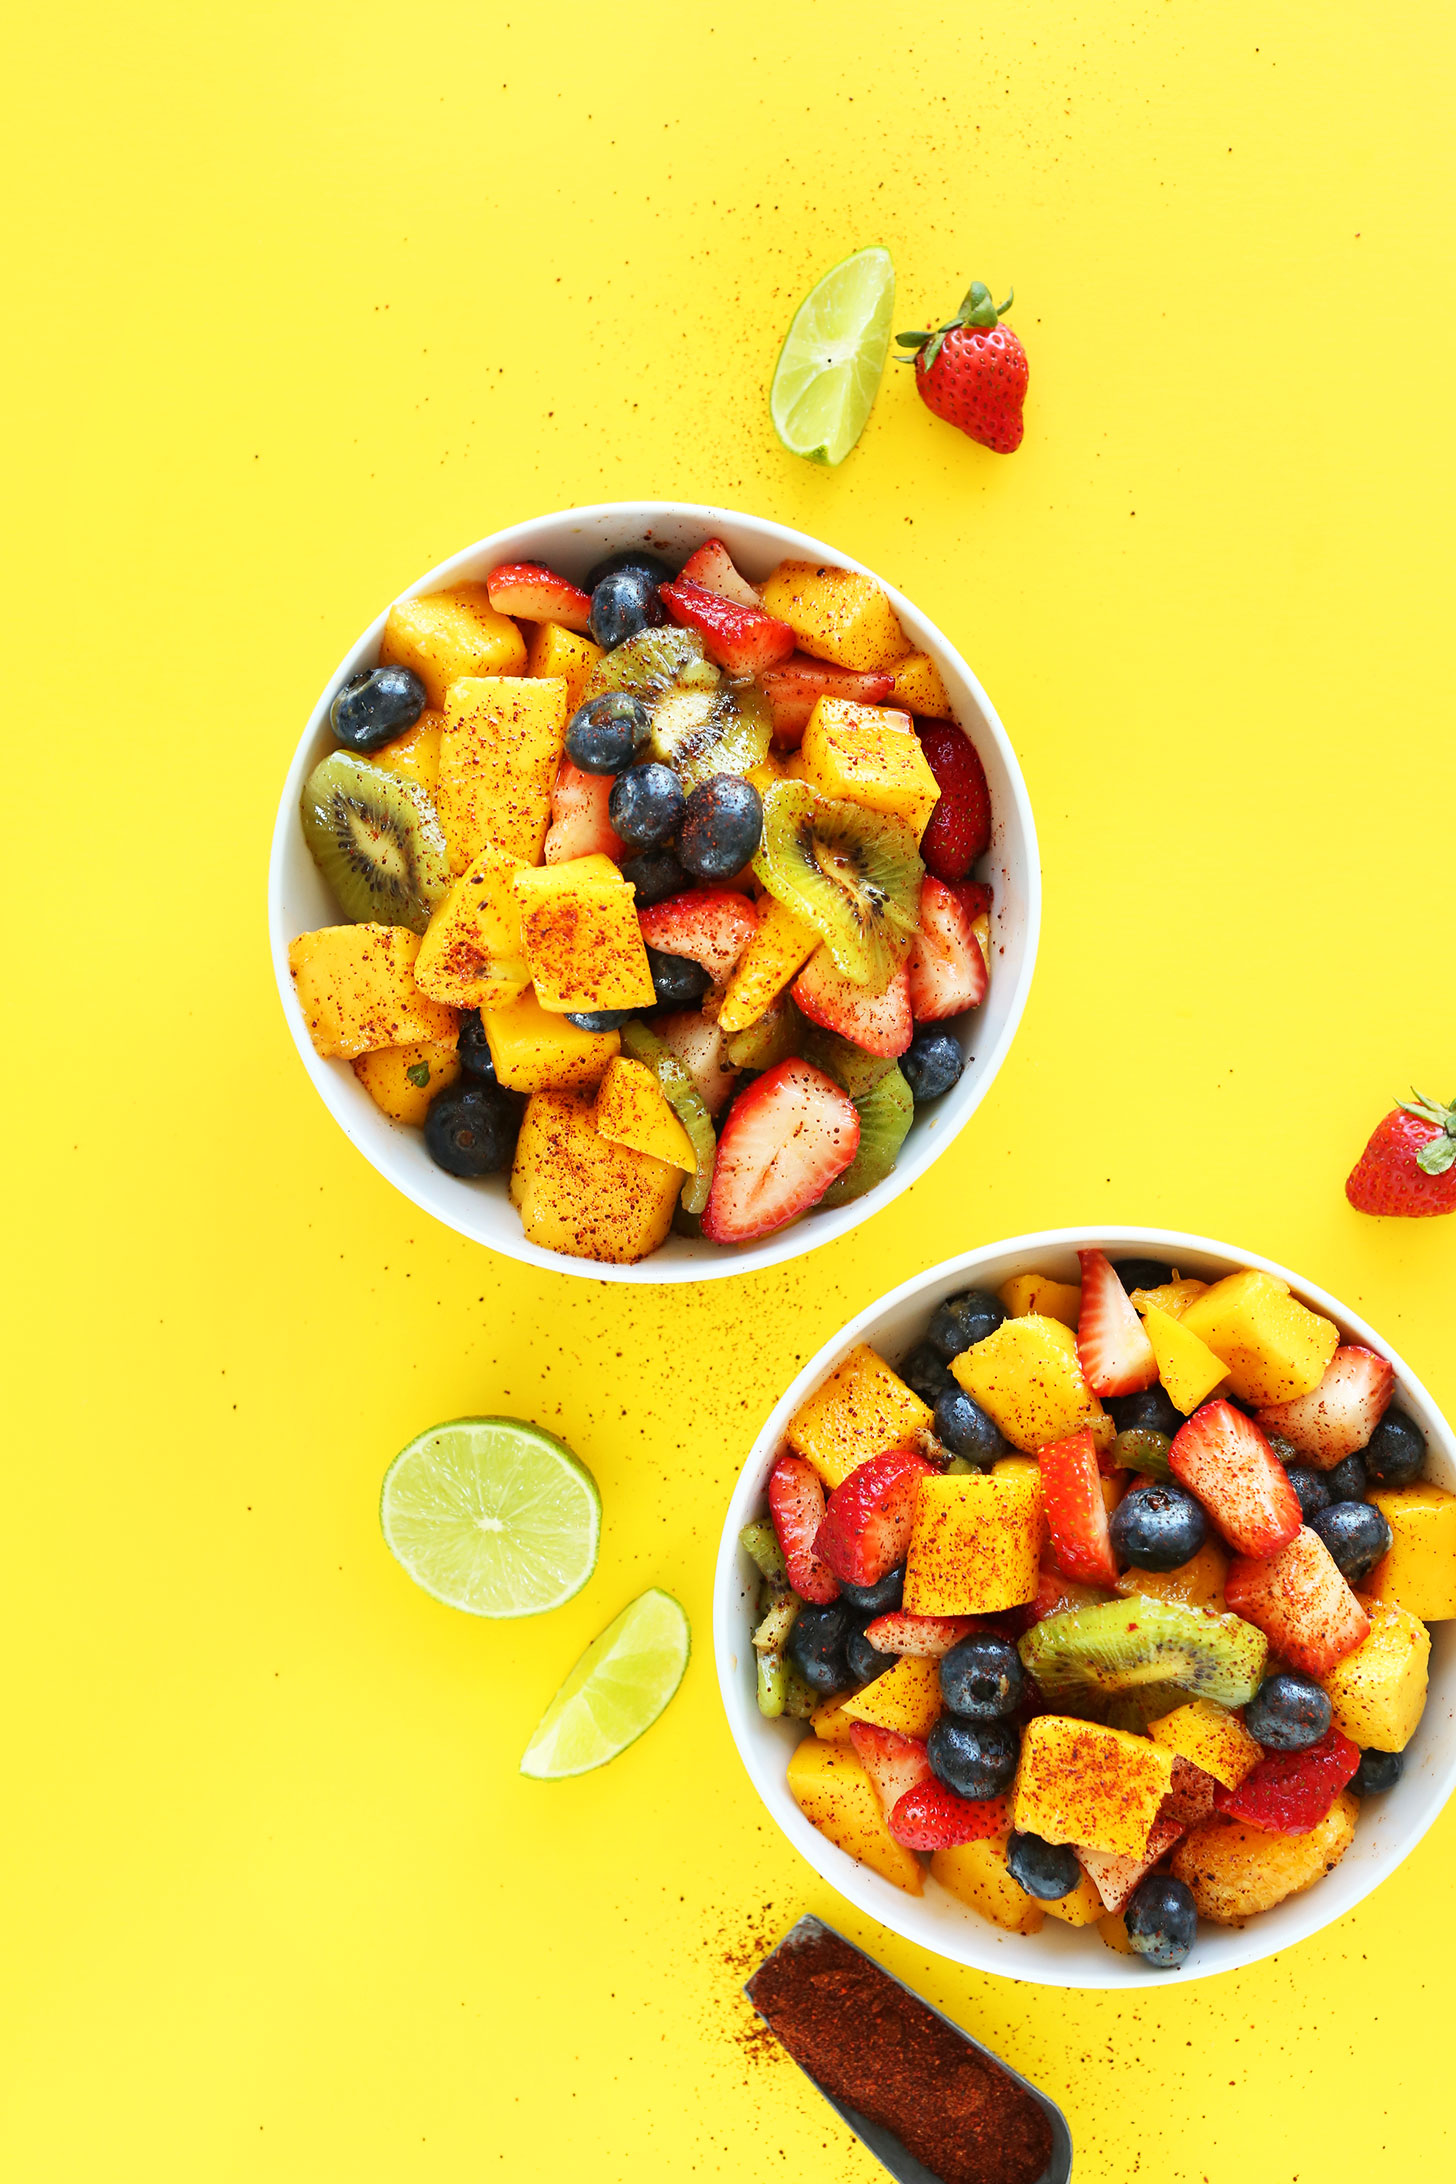 Bowls of our irresistible Spicy Fruit Salad